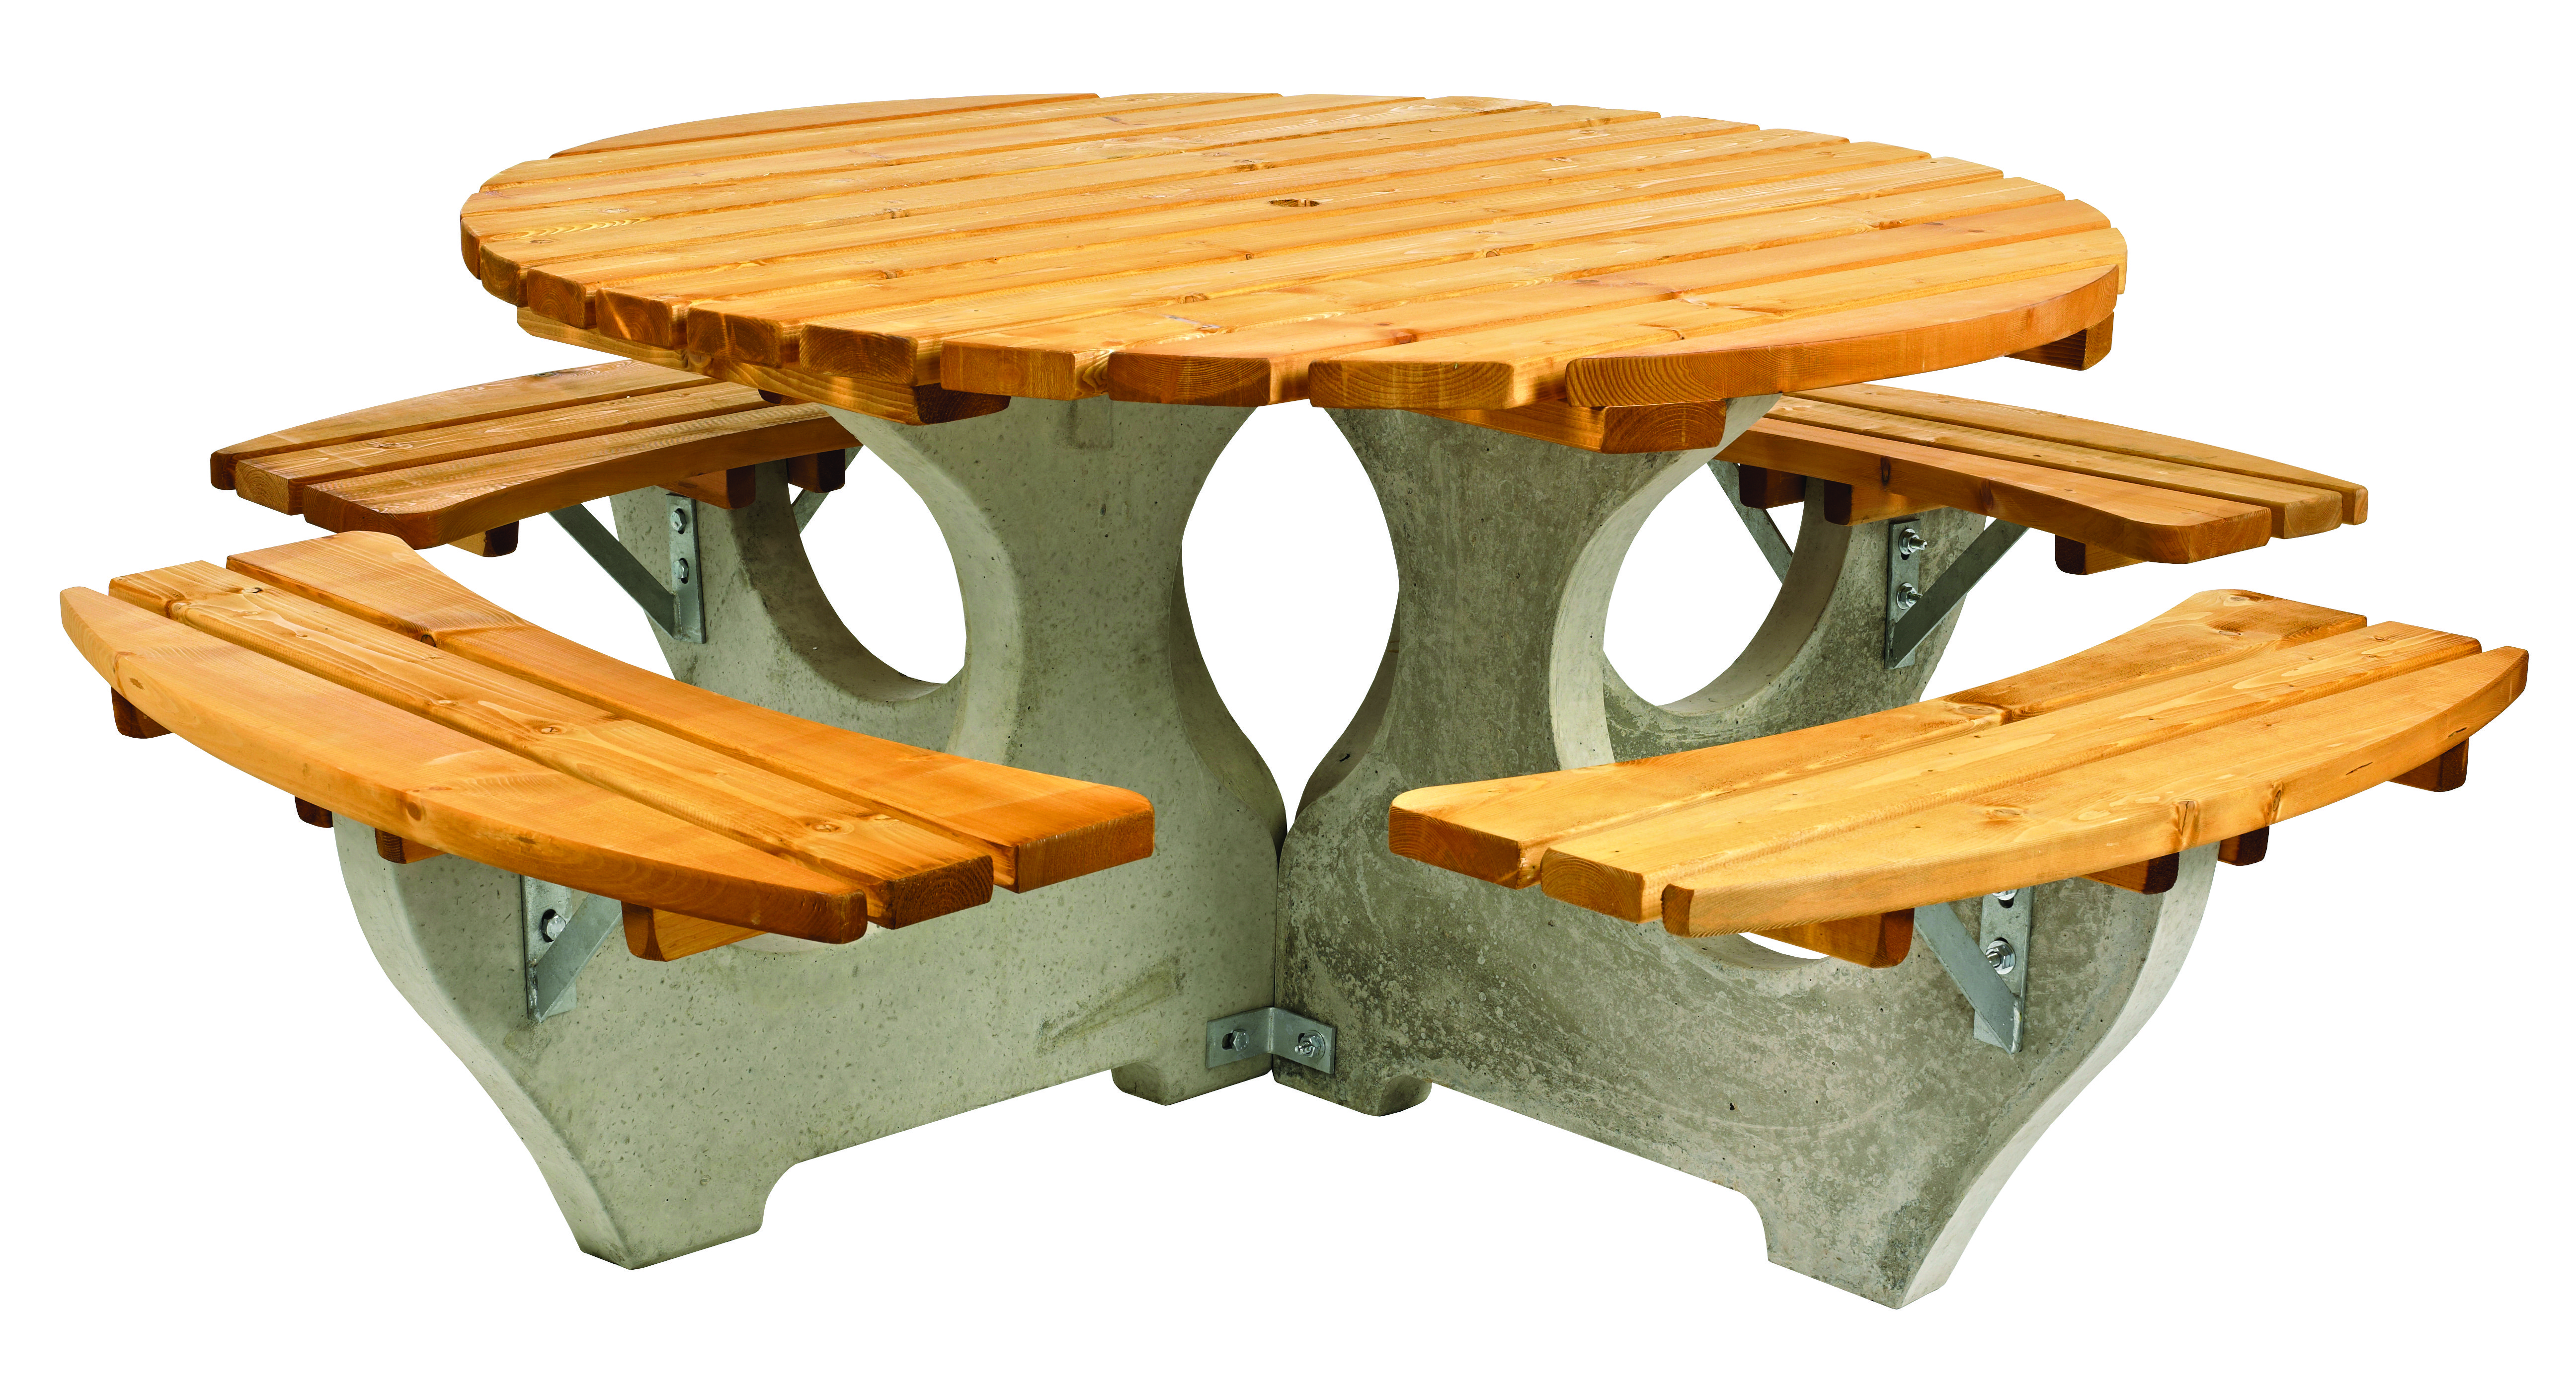 Concrete Round Picnic Table Simply Wood